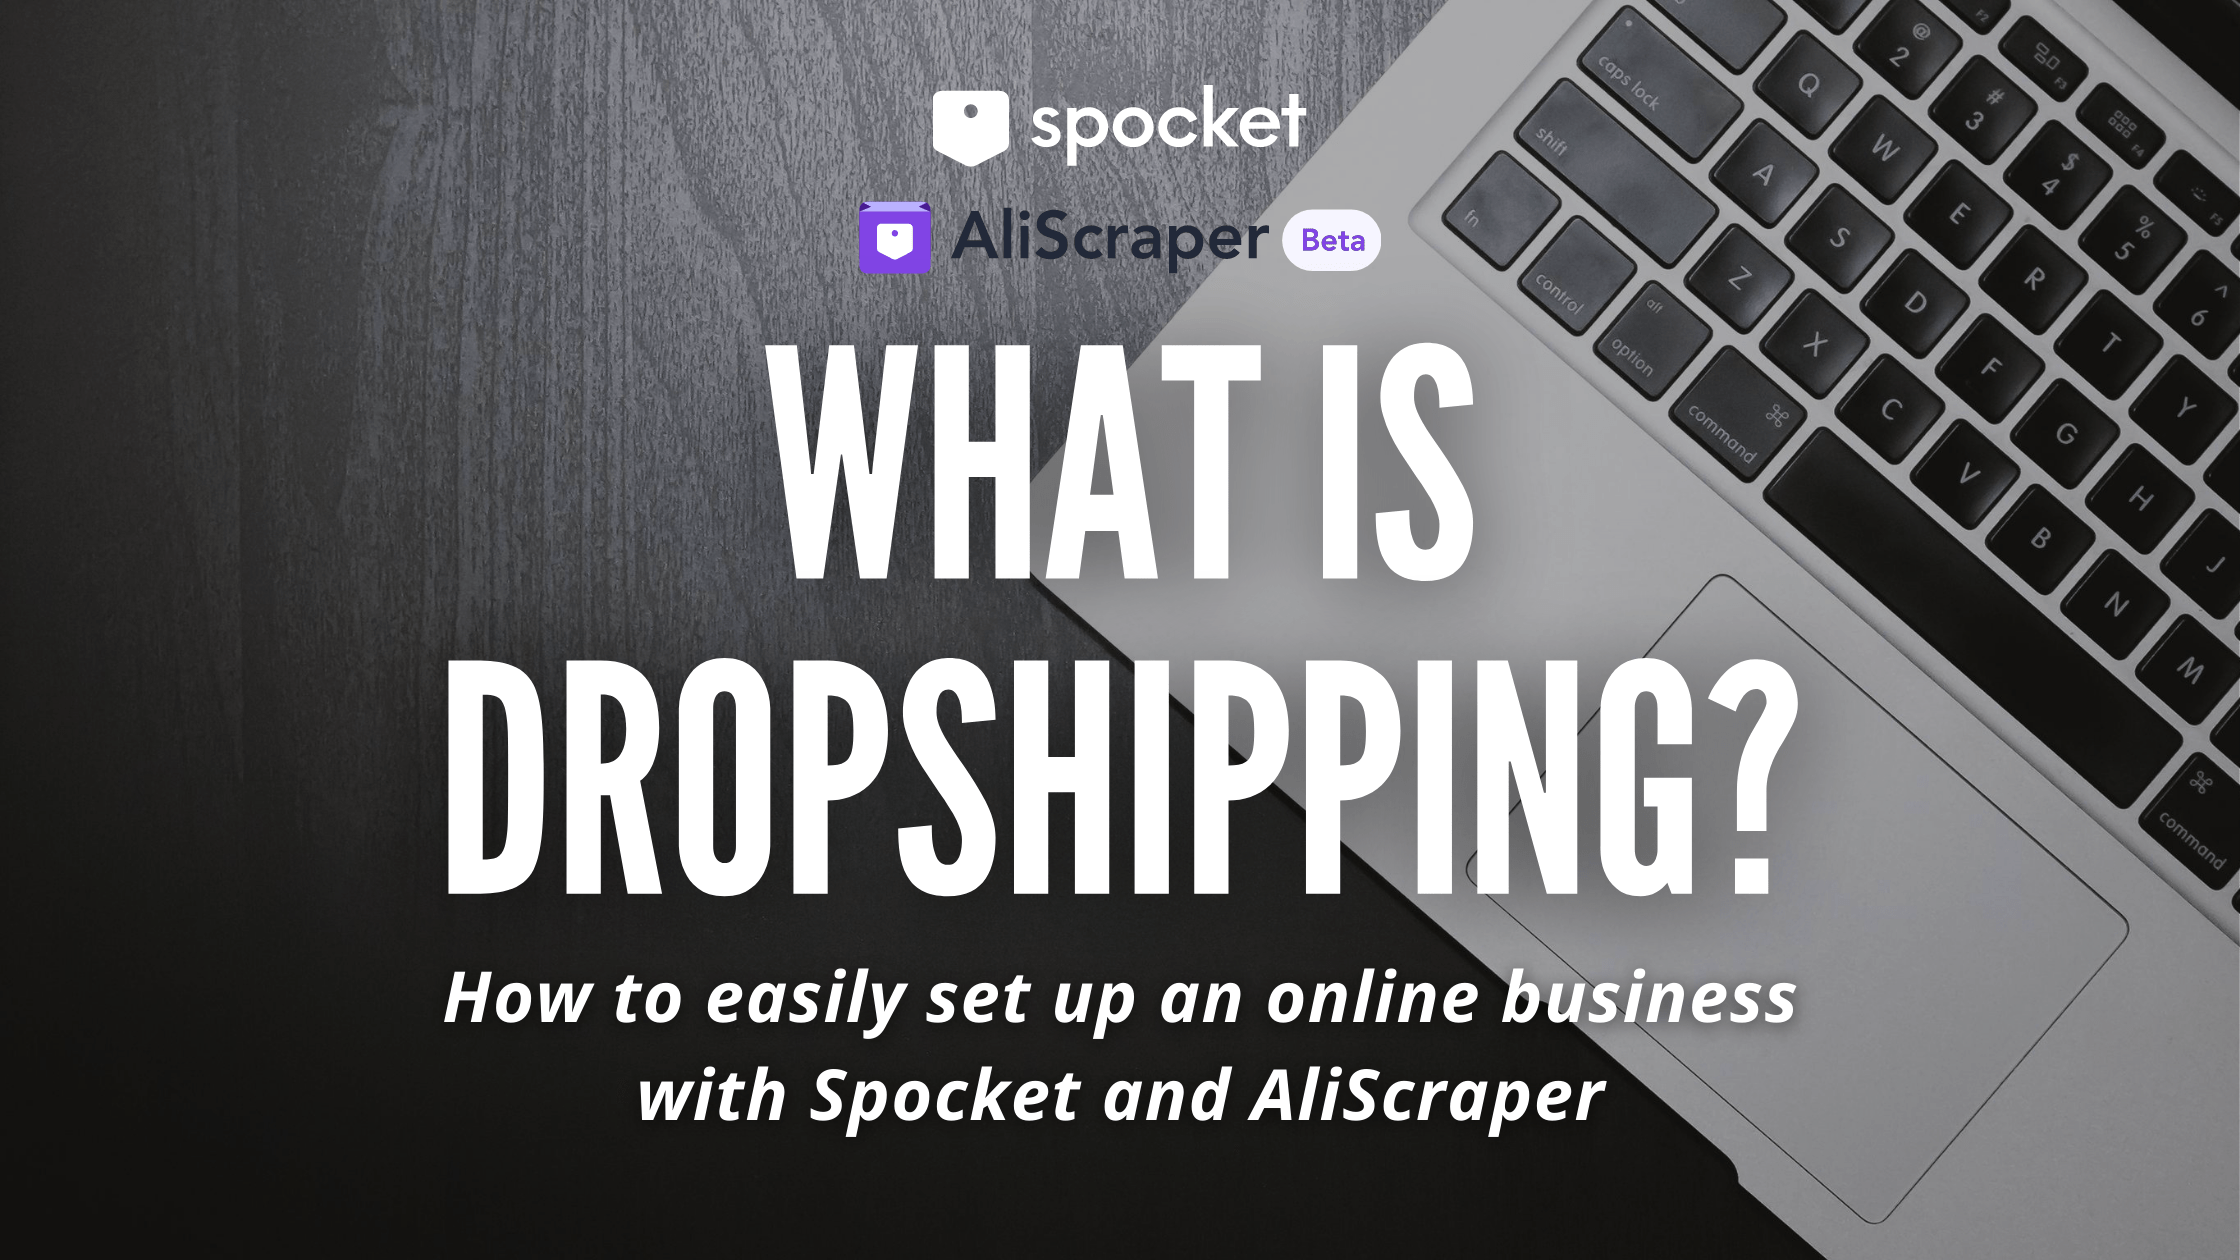 dropshipping spocket aliscraper